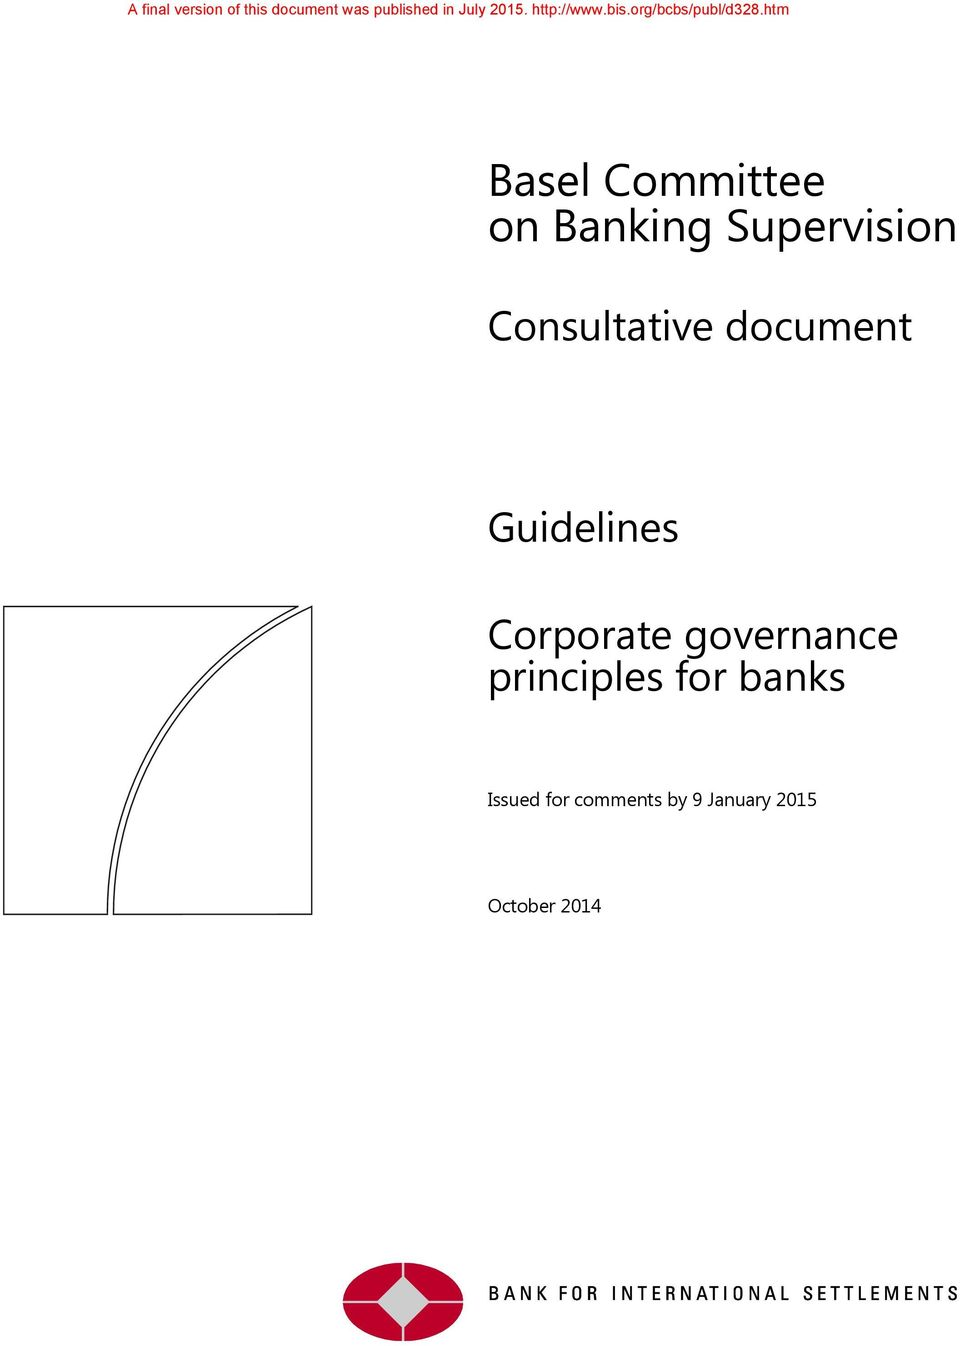 Corporate governance principles for